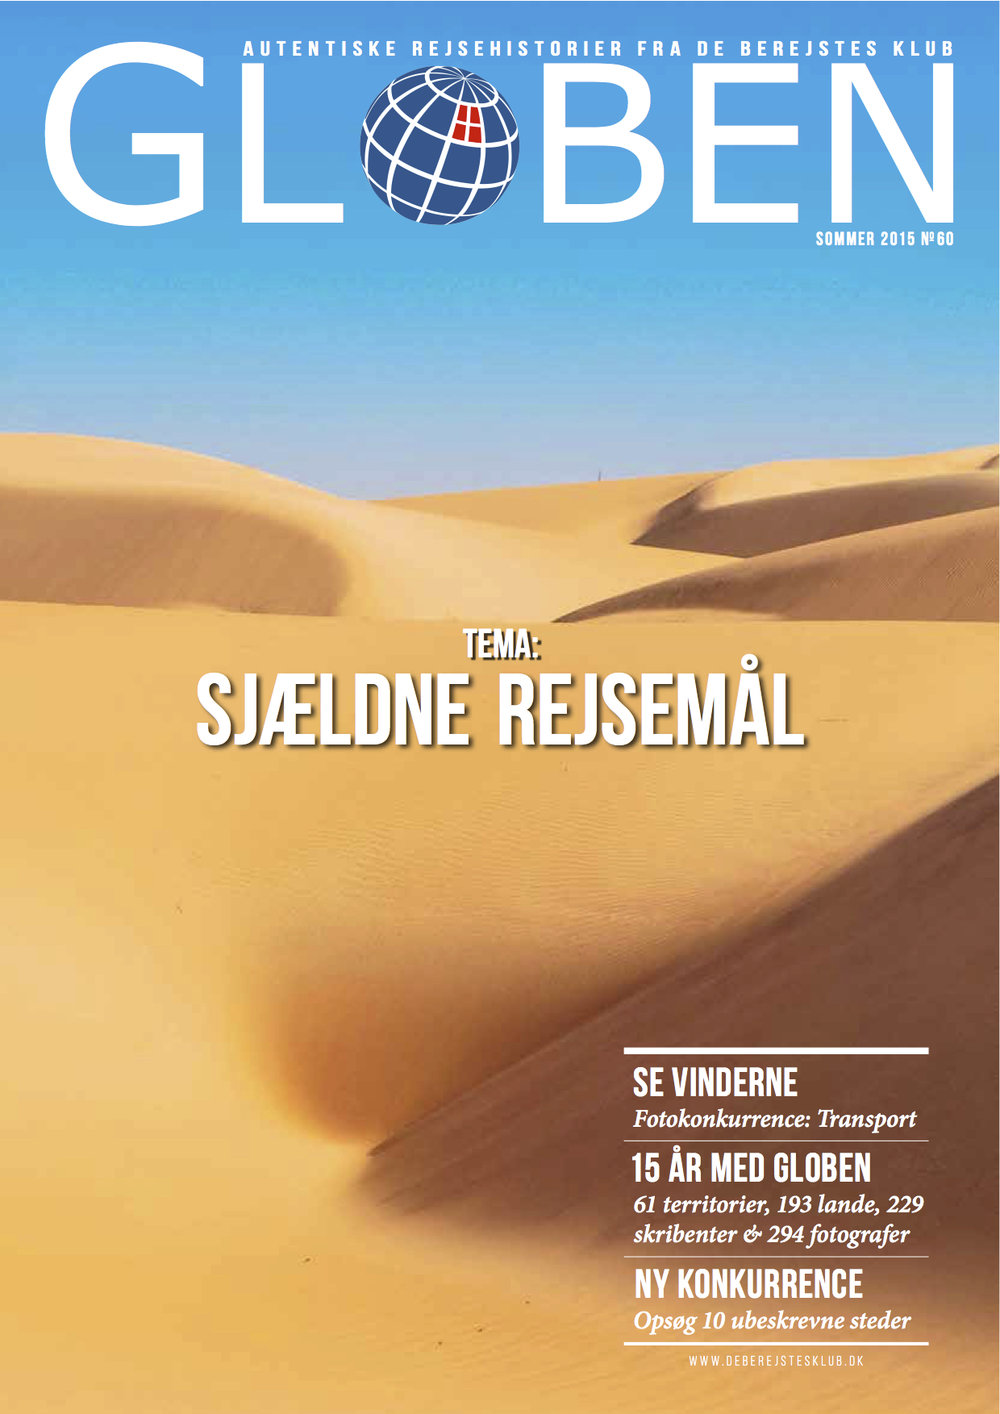 Issue 60: Sjældne Rejsemål   The theme is Exotic Travel Destinations, taking the readers to places not many has visited. Tristan da Cunha, Curaçao, the North Pole, Abkhazia, and more. Read  here .